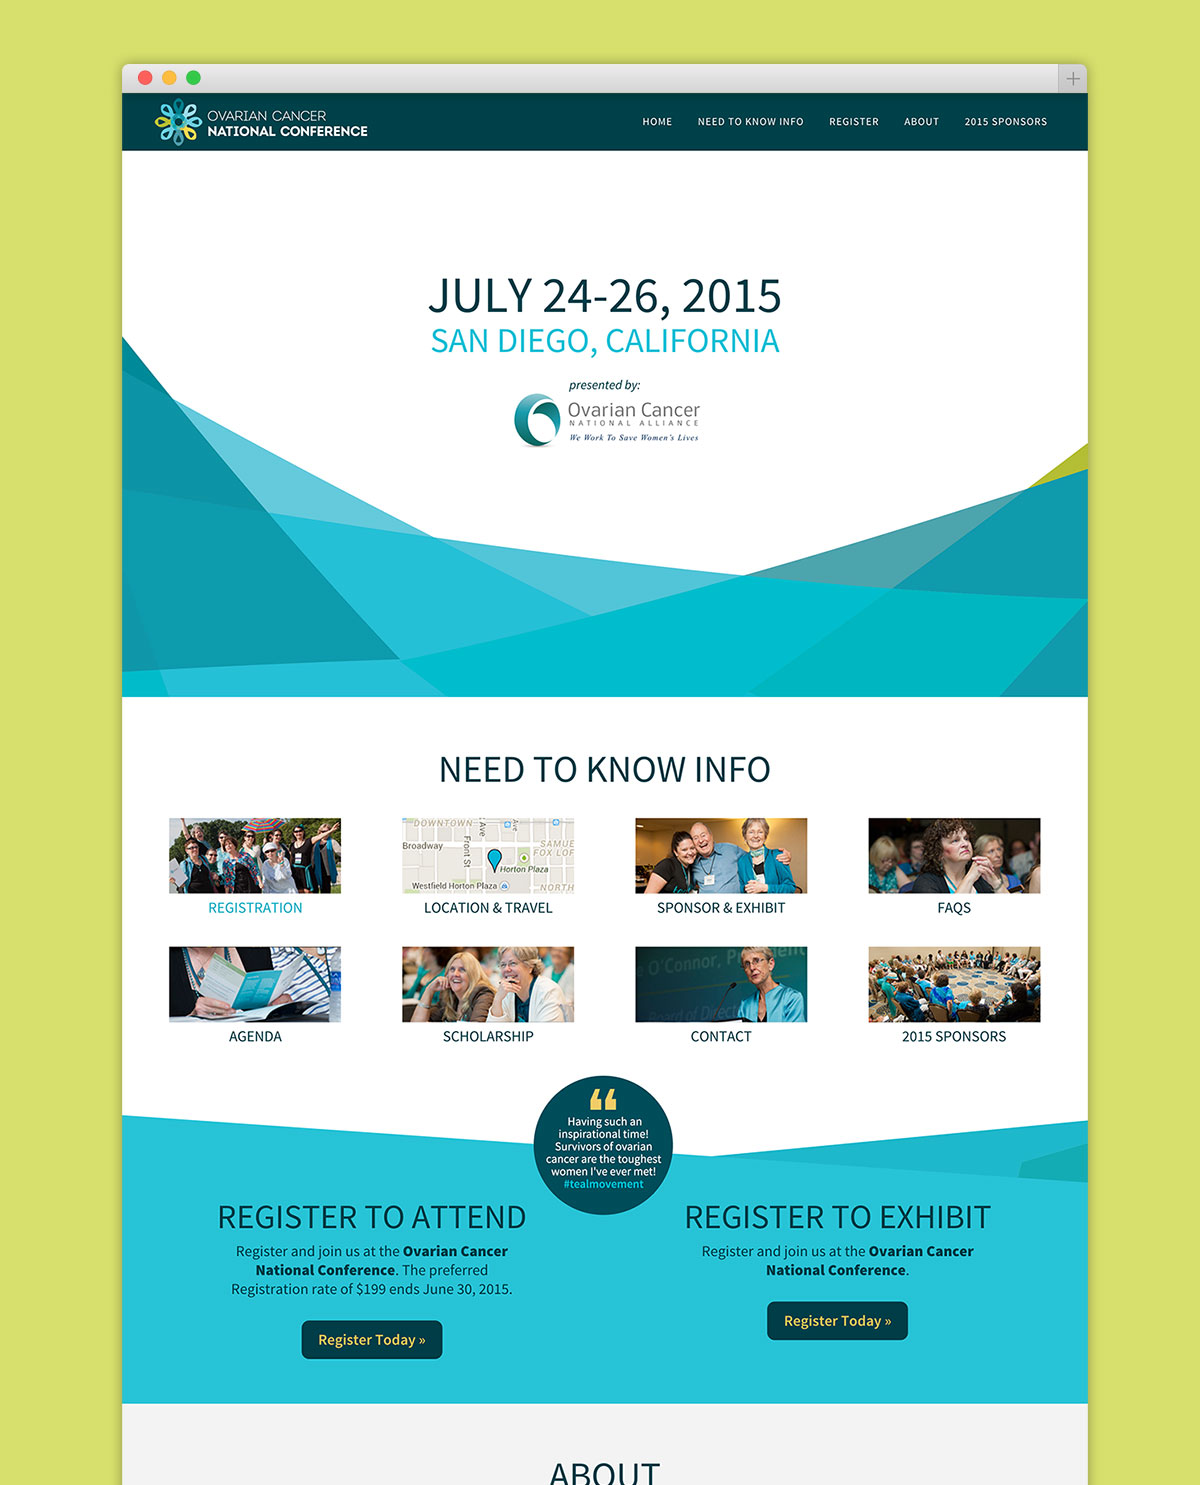 homepage design of Ovarian Cancer National Conference website